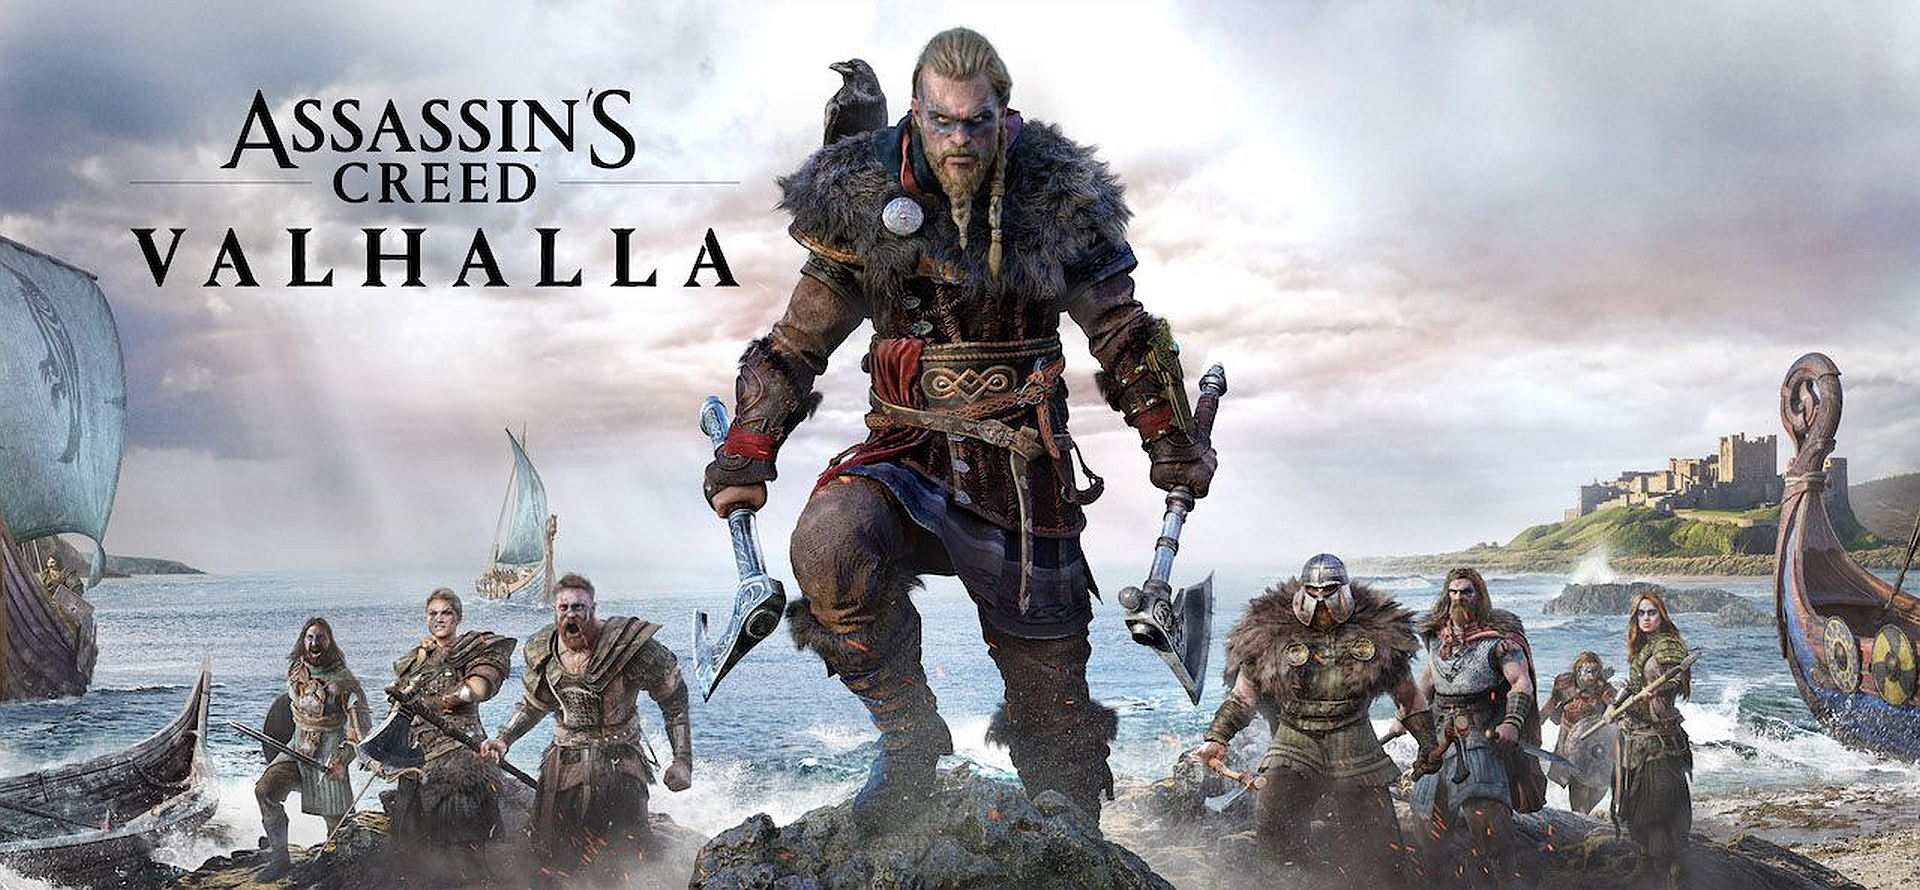 Assassin S Creed Valhalla Gets First Stunning Screenshots Season Pass And Collector S Edition Details